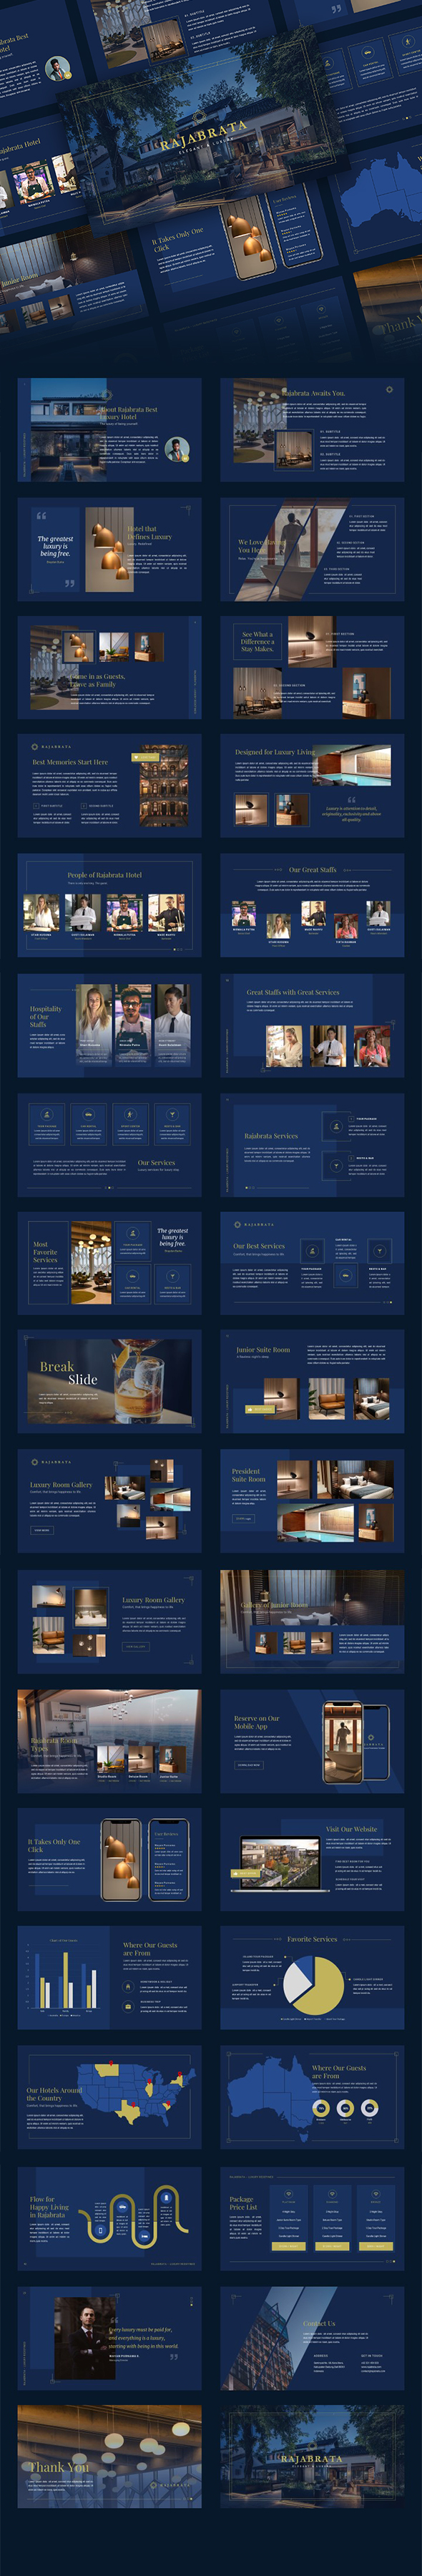 Rajabrata - Elegant & Luxury Google Slides Template